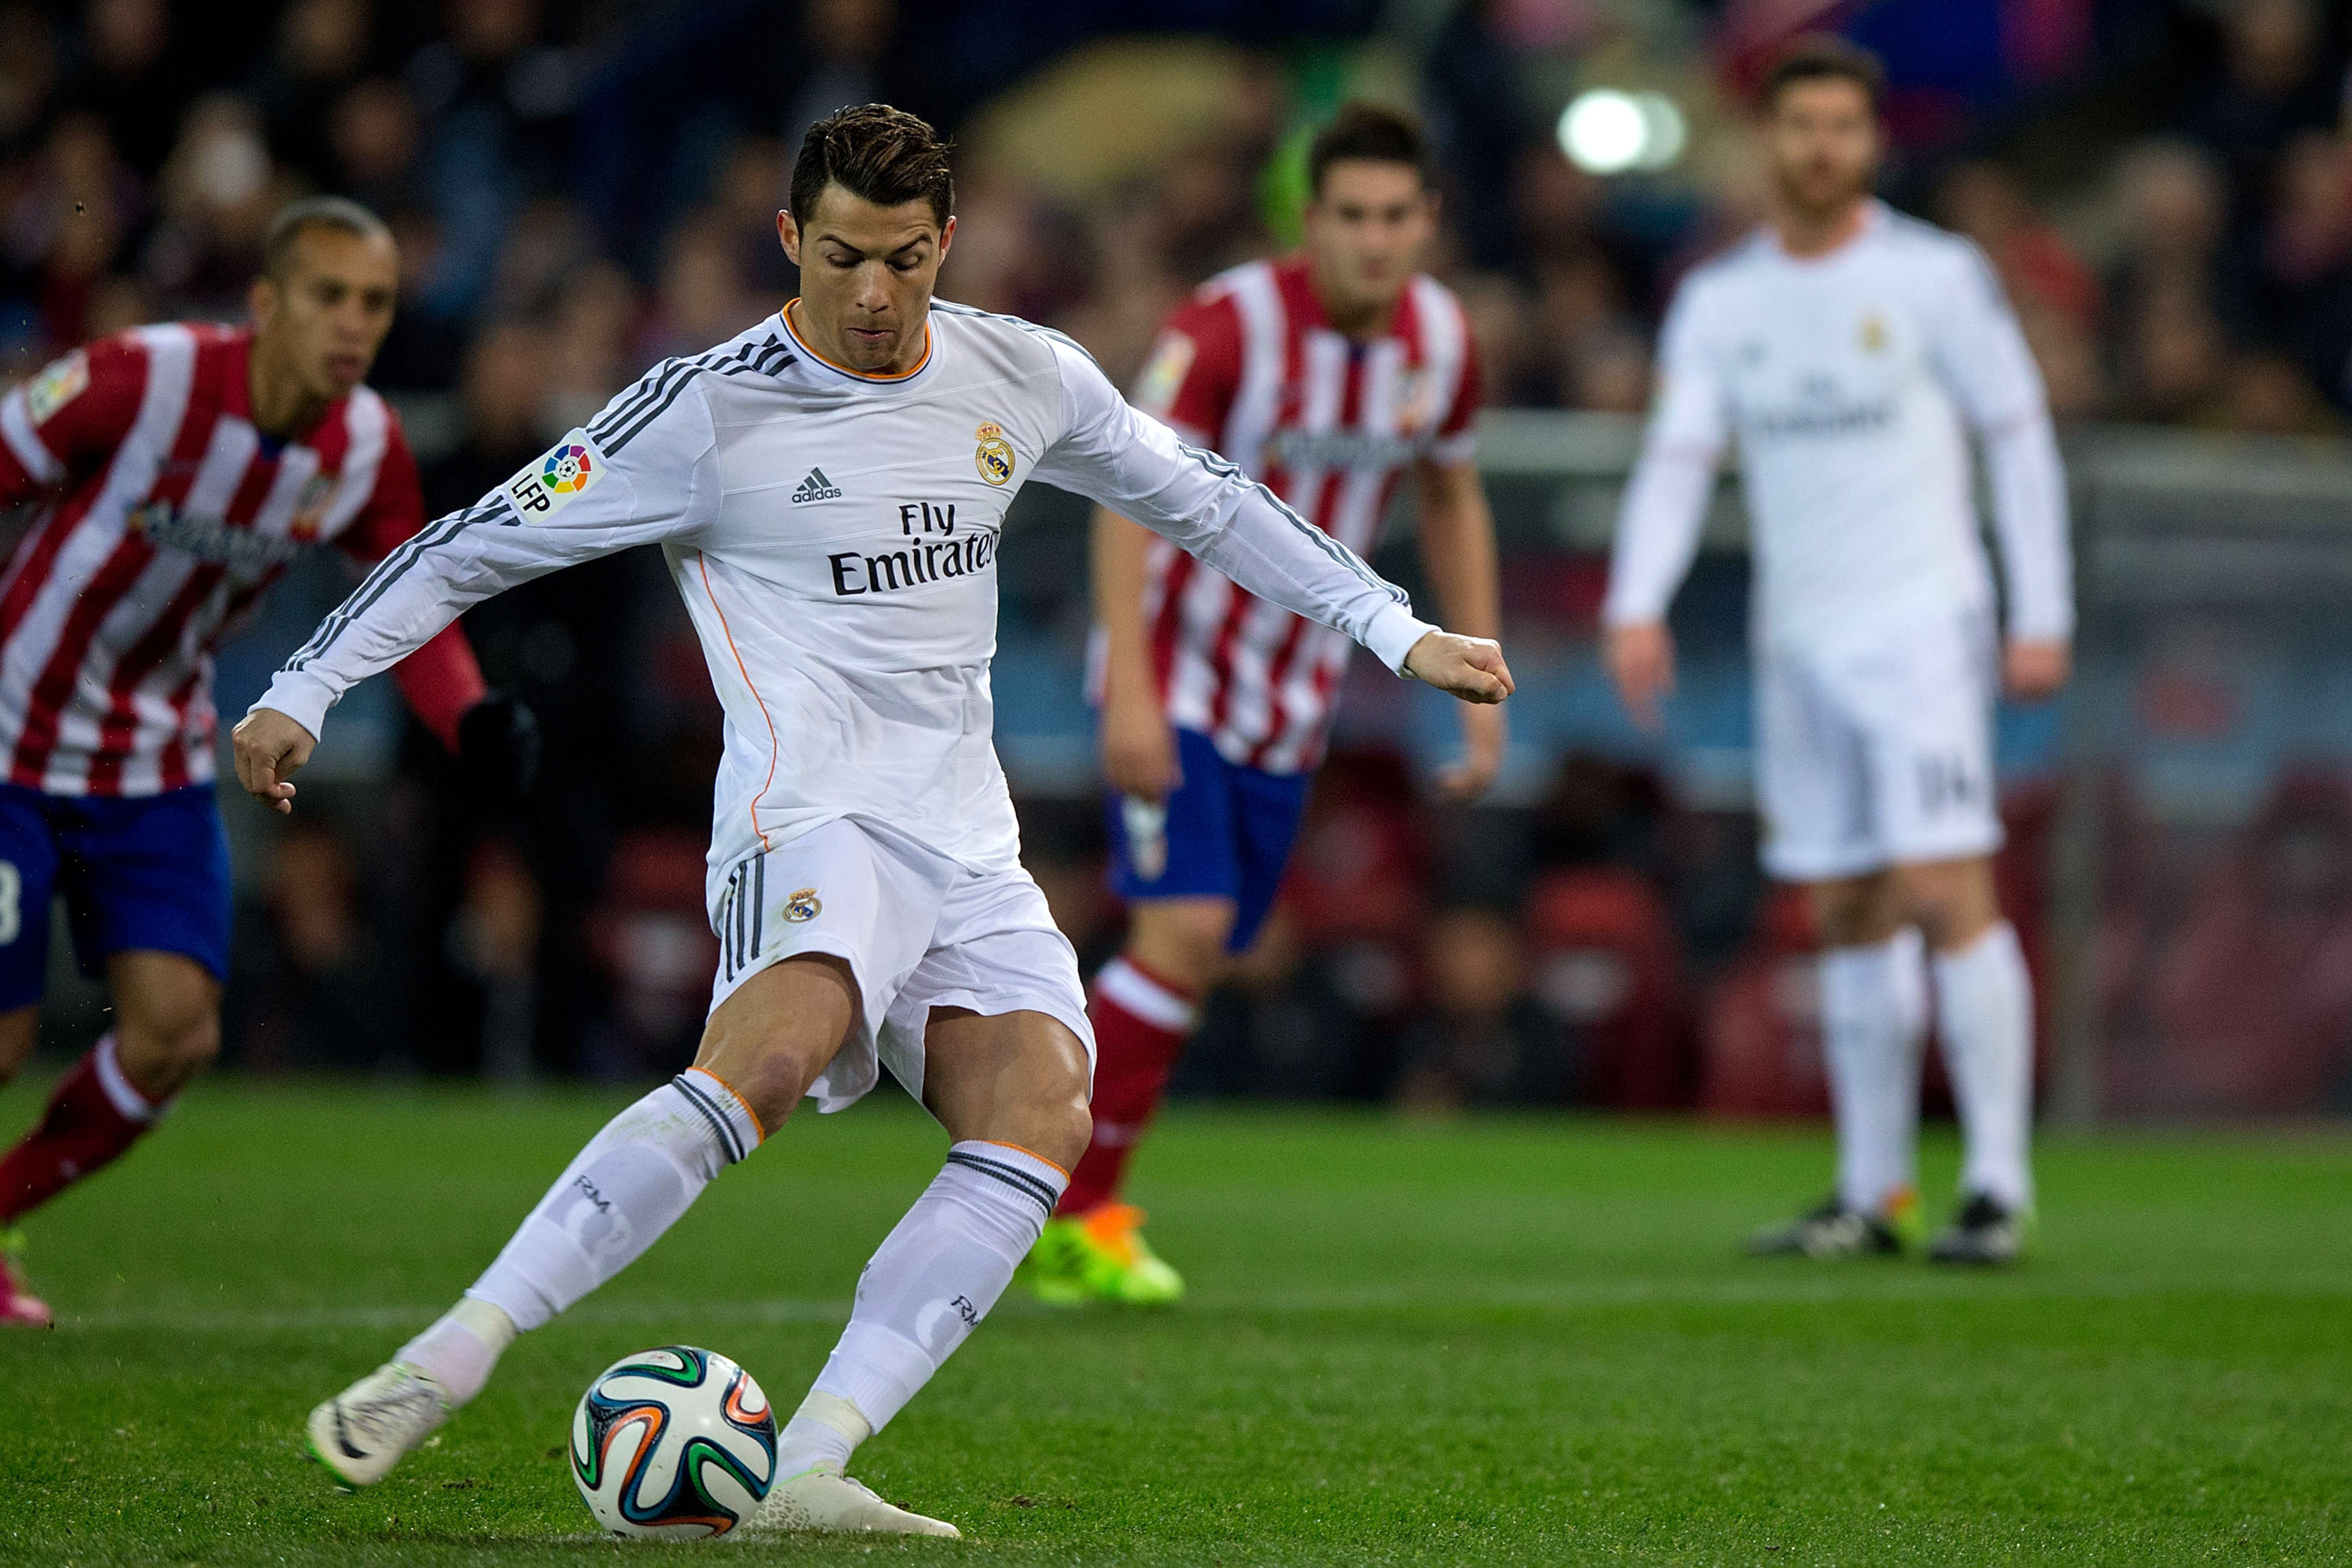 Atlético Madrid vs. Real Madrid: Final score 0-2, Ronaldo's brace leads Madrid to the finals